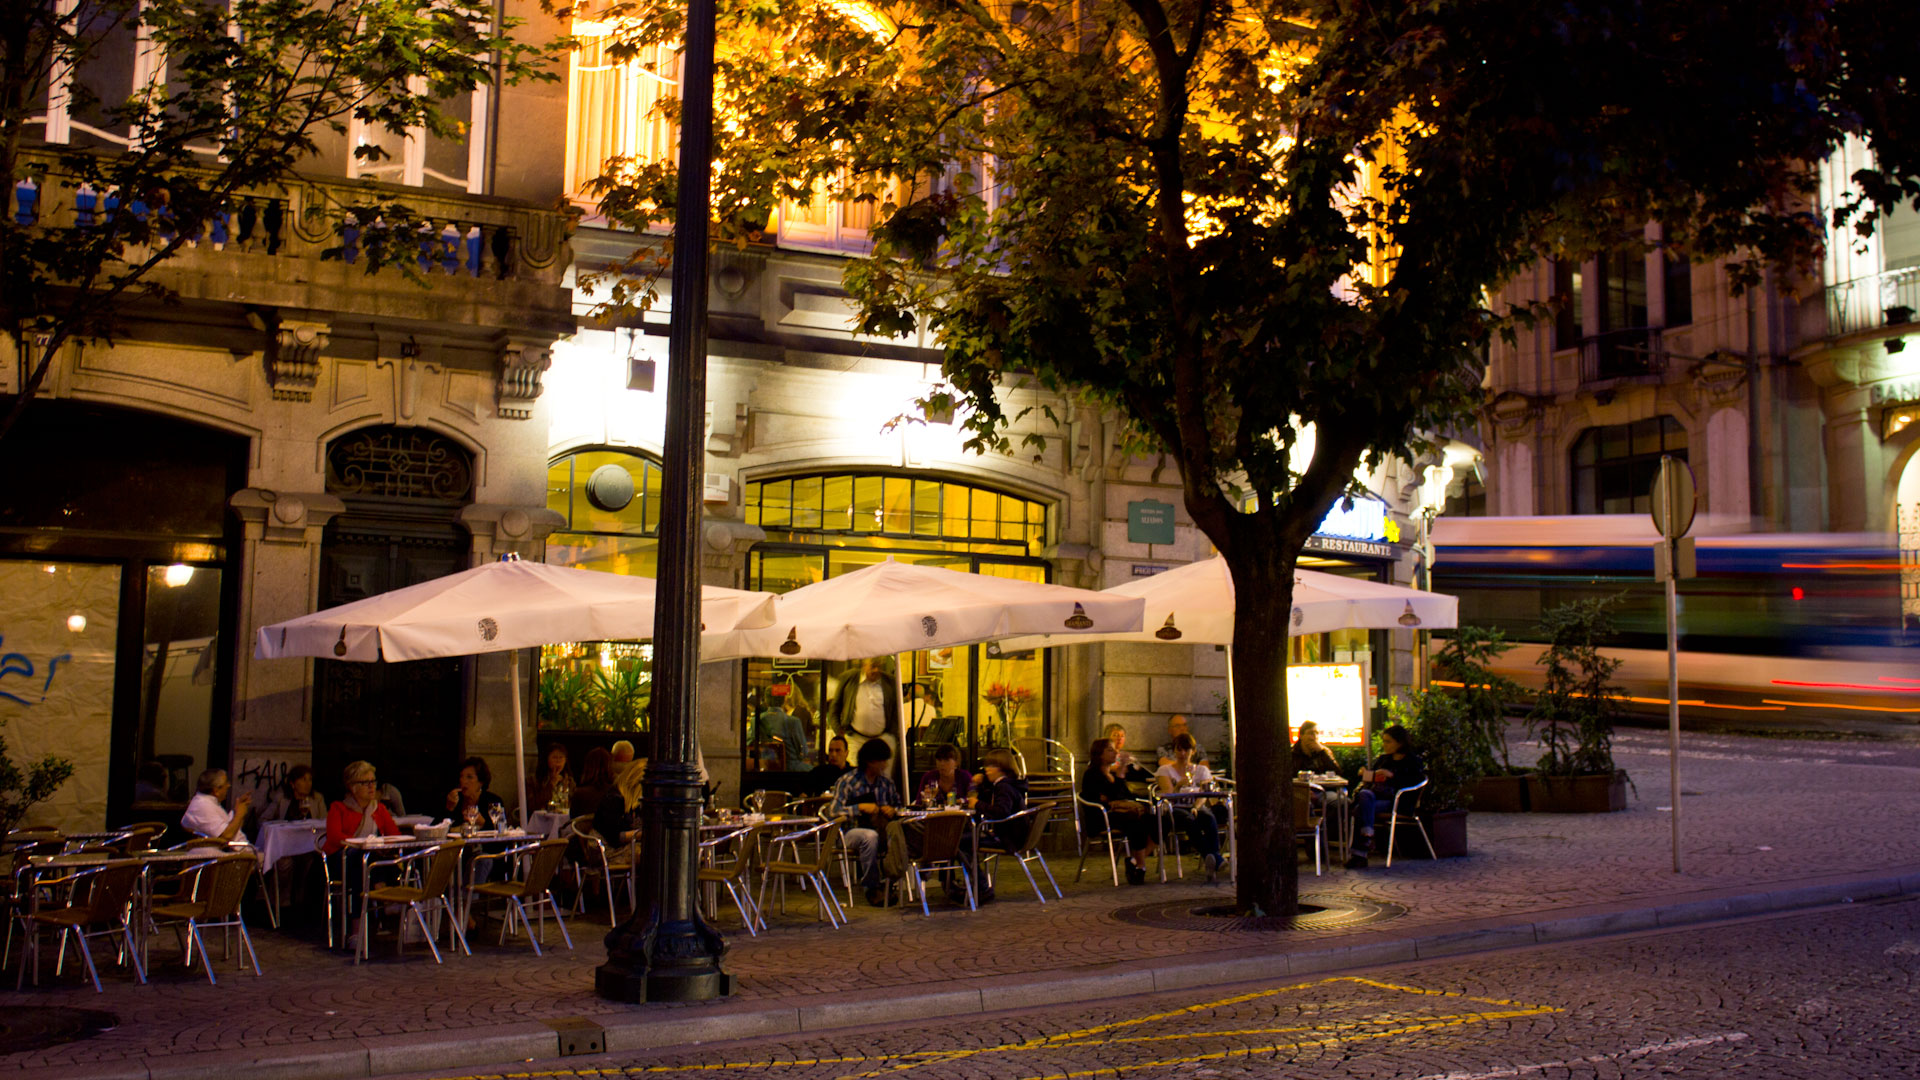 Café Guarany on Avenue Aliados in Porto